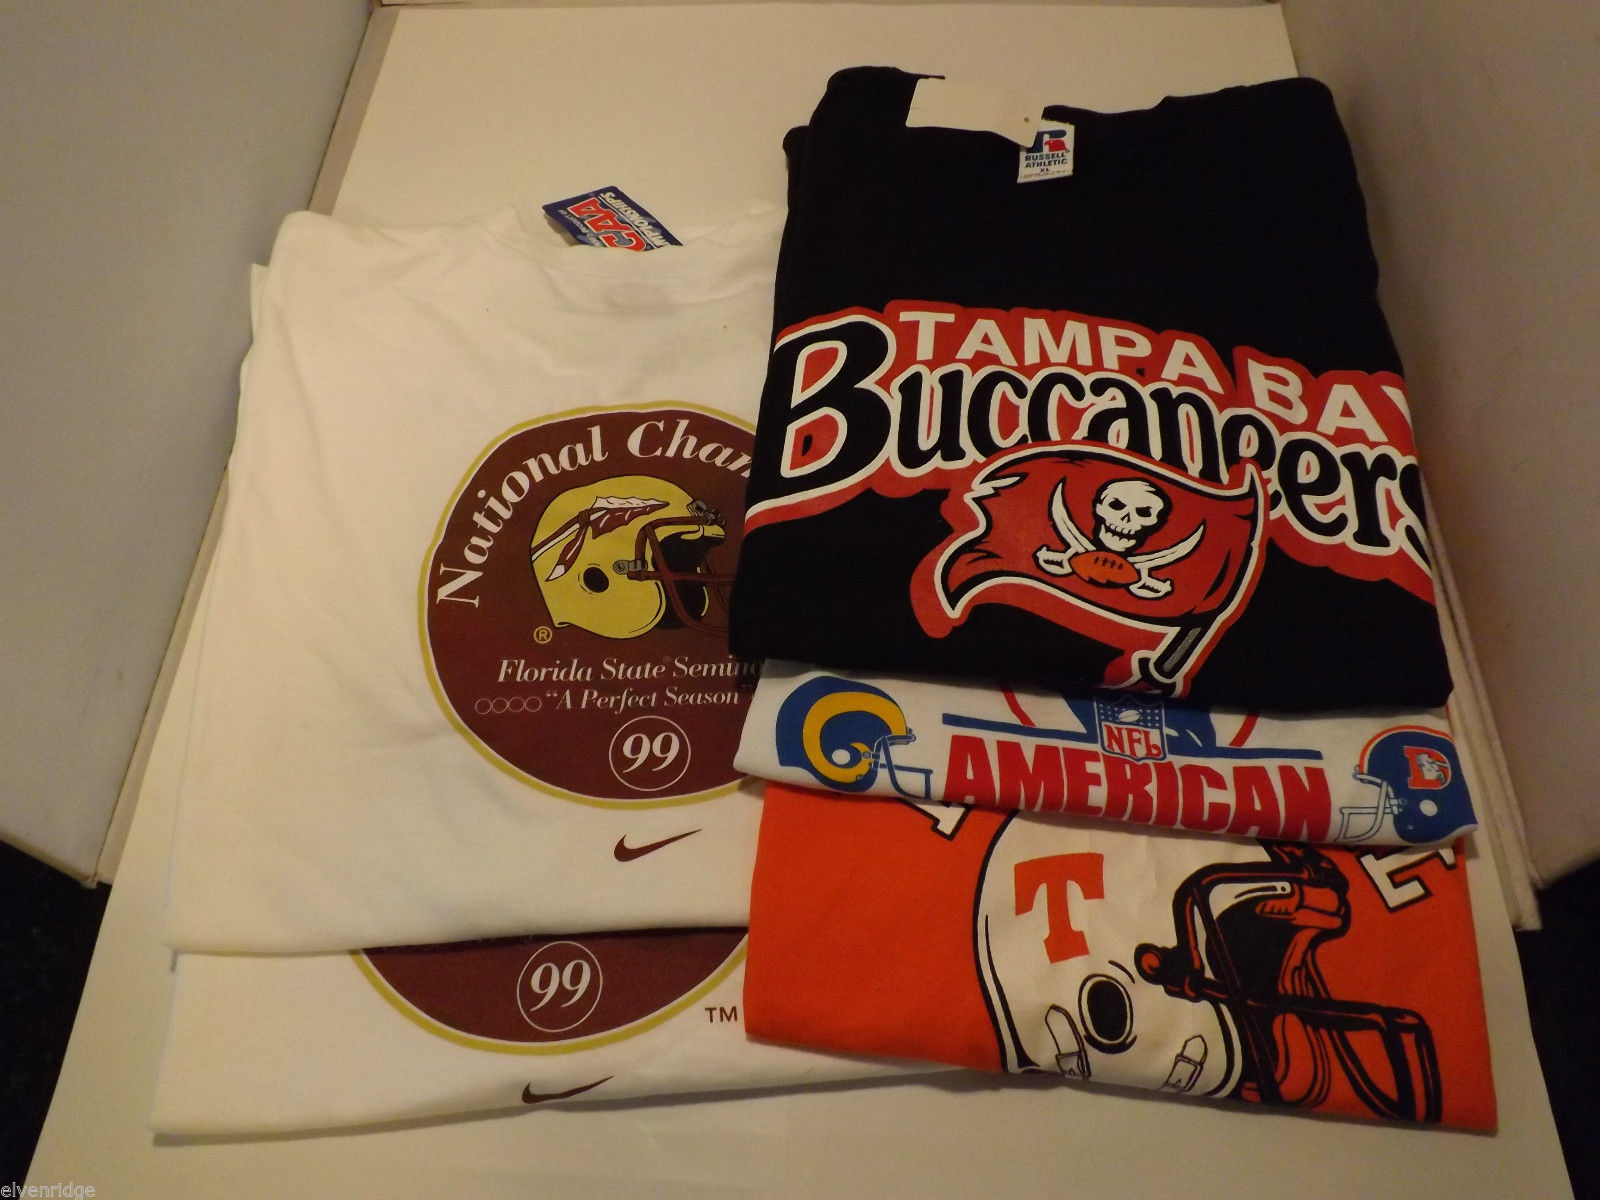 Lot of 5 Football T-Shirts Rams Broncos Seminoles Volunteers Buccaneers